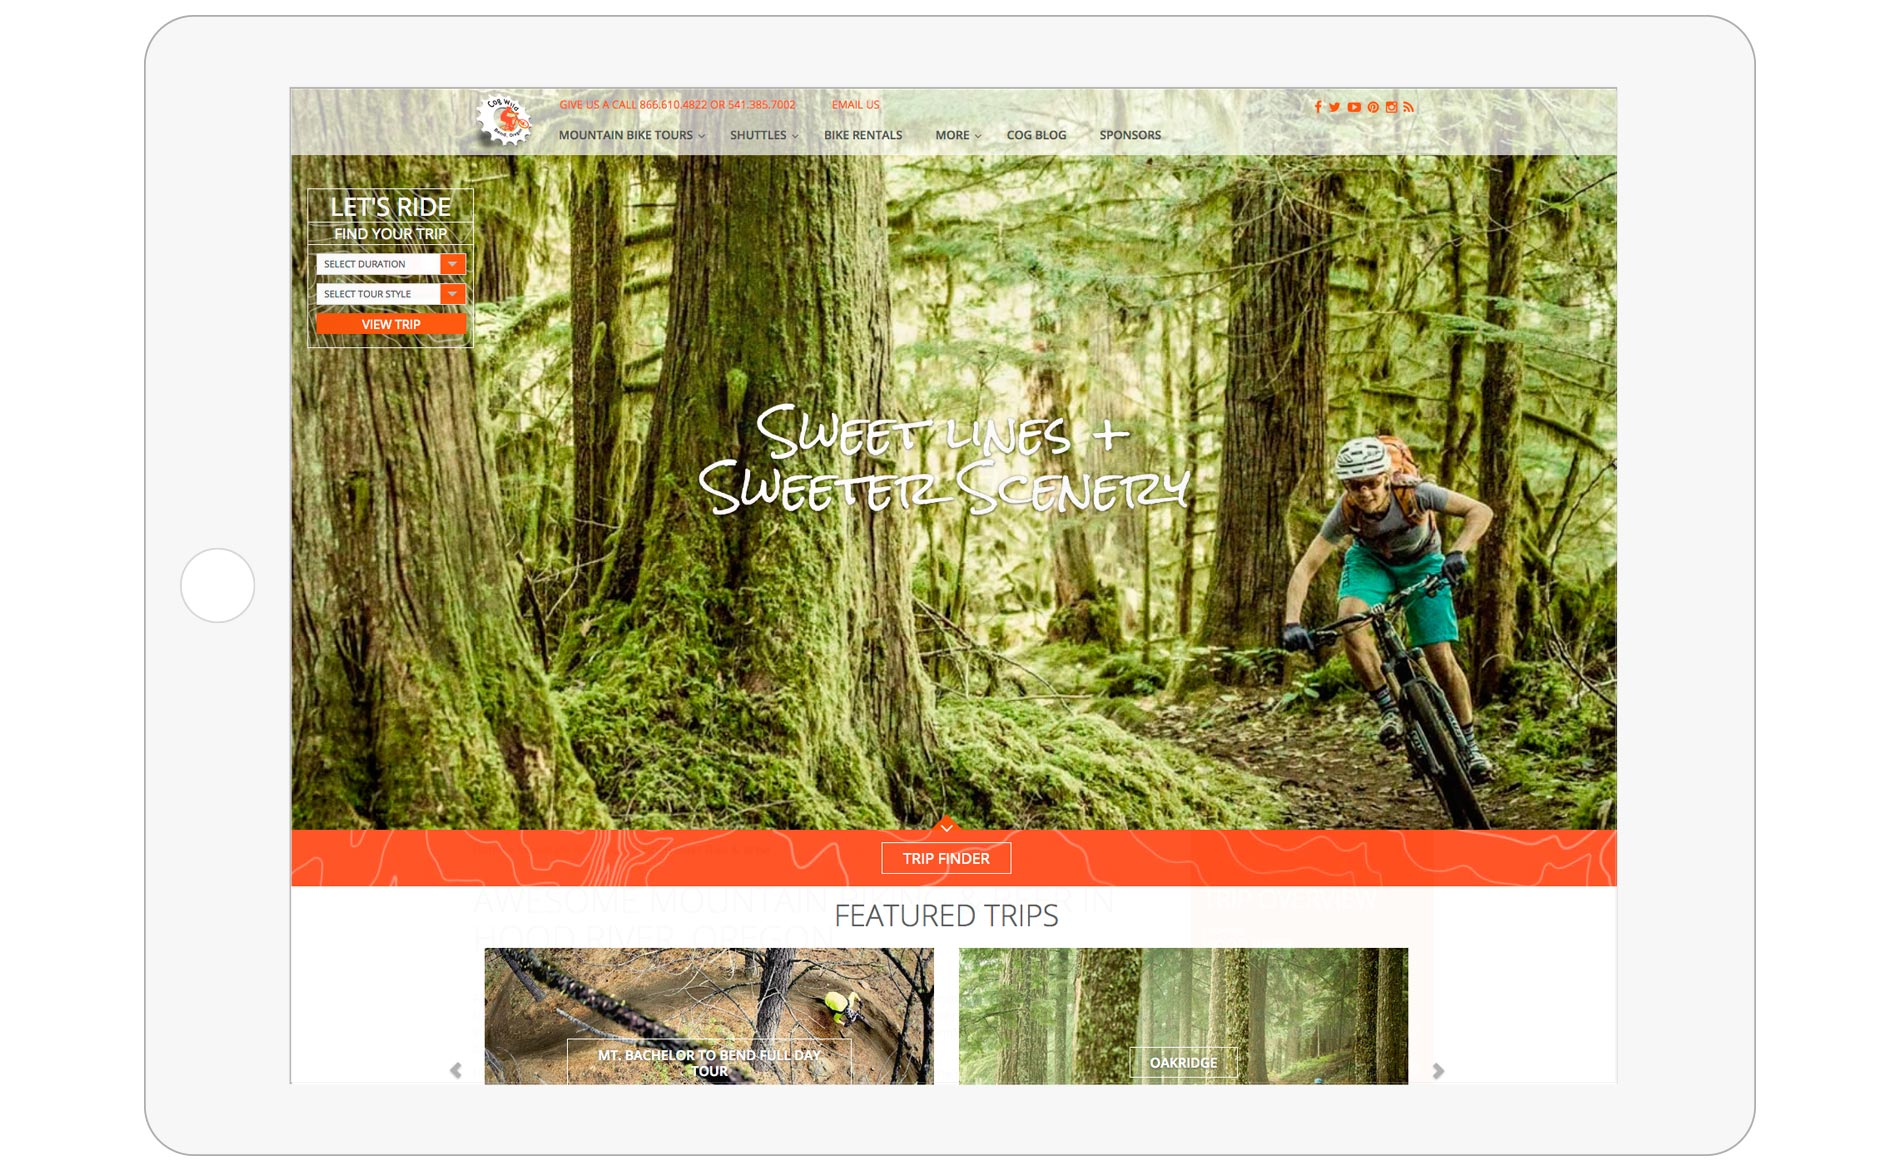 Cog Wild Mountain Bike Tours Web Design - Home Page